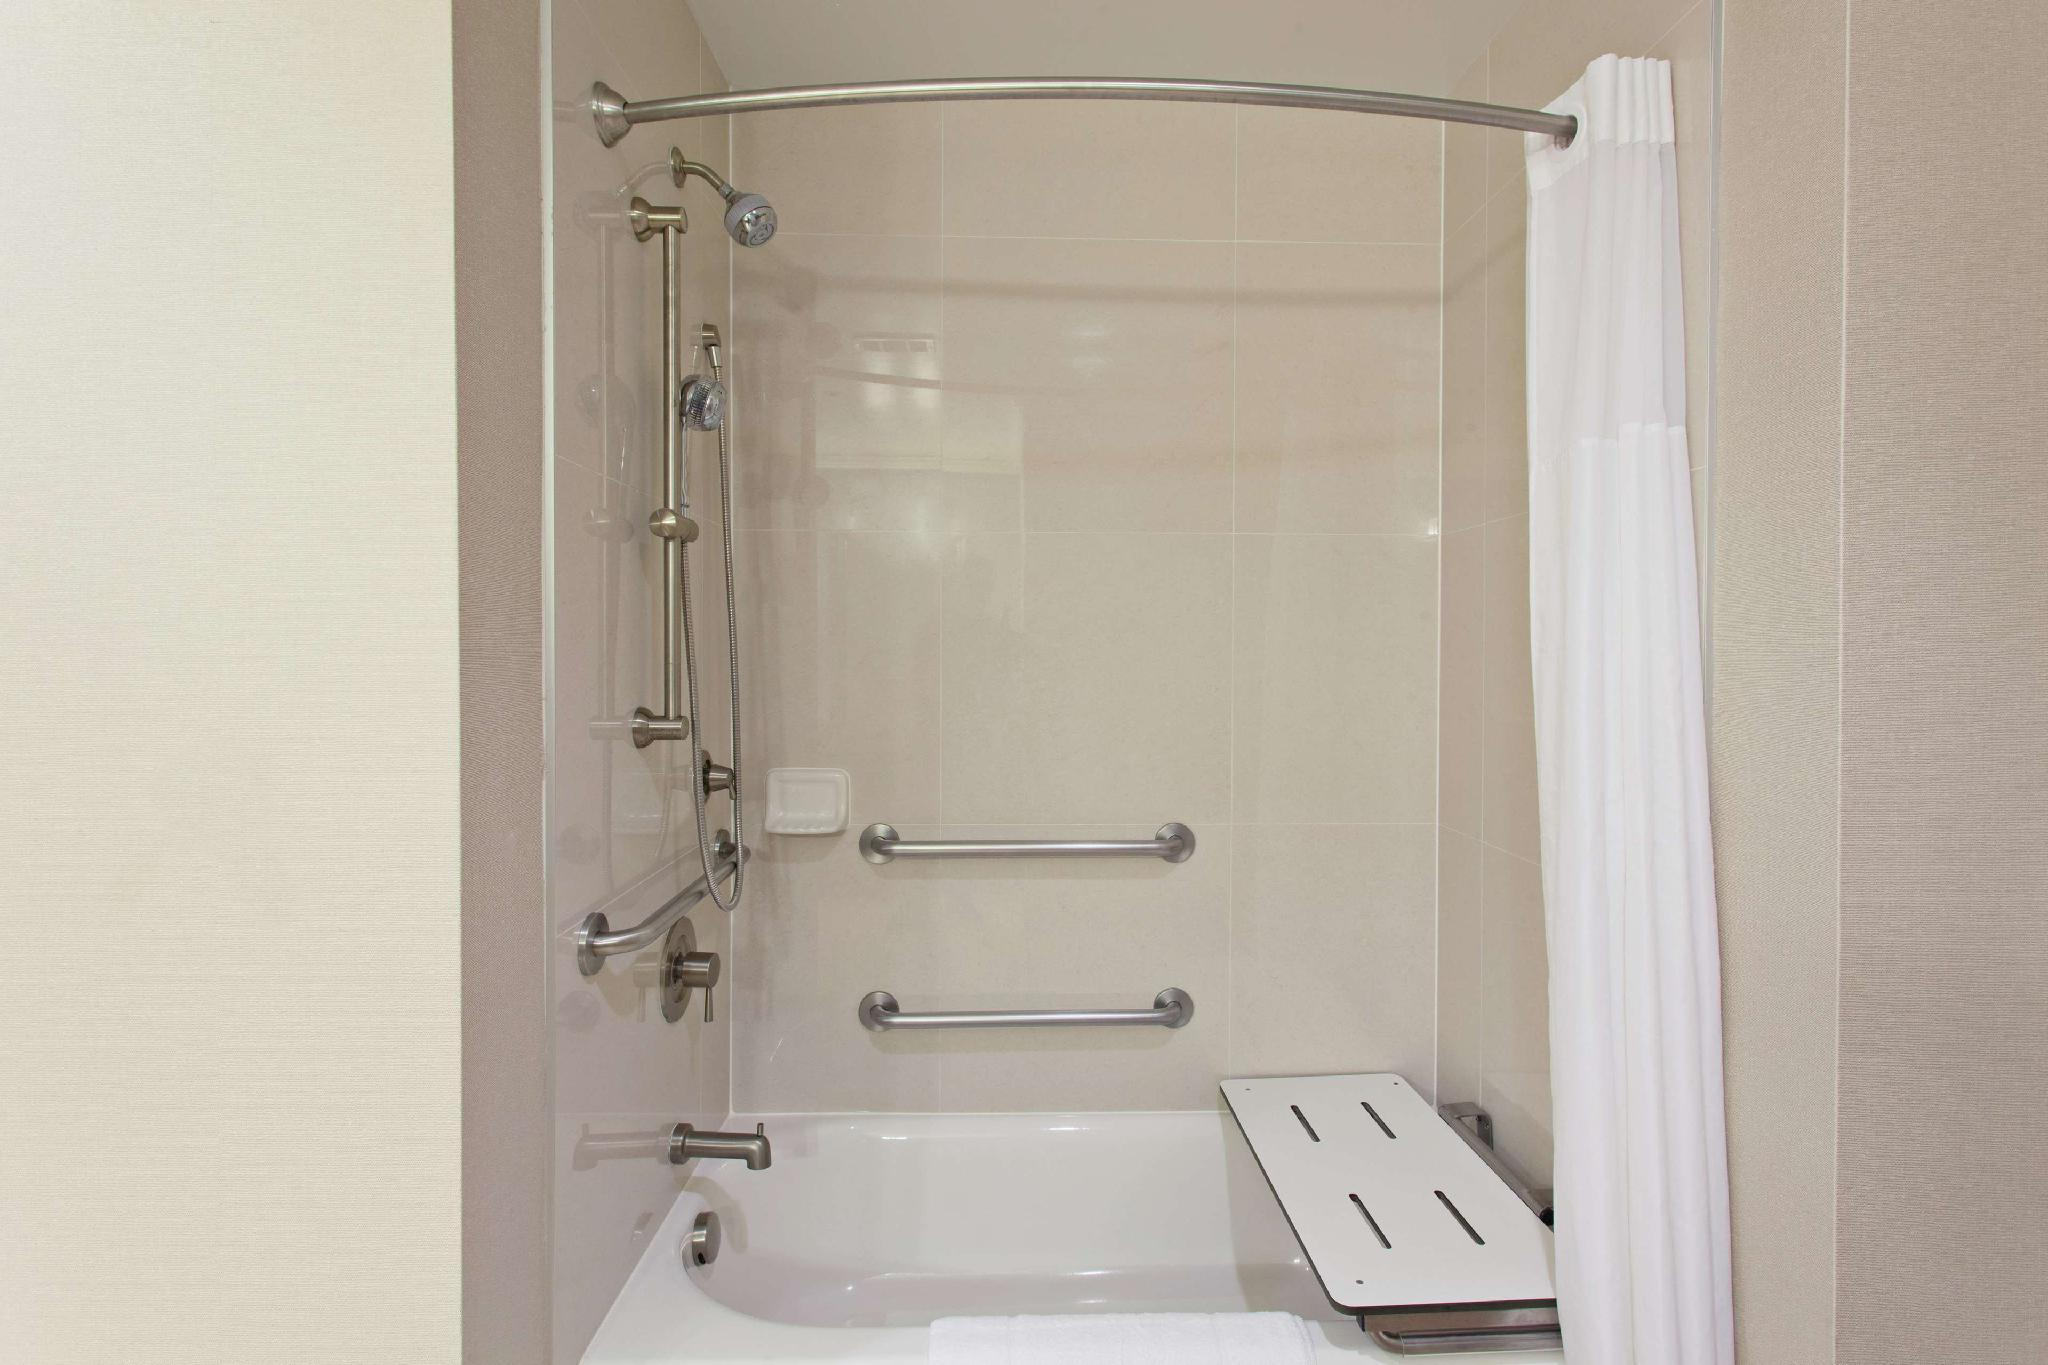 1 King Mobility Hearing Accessible Tub Non-Smoking Studio